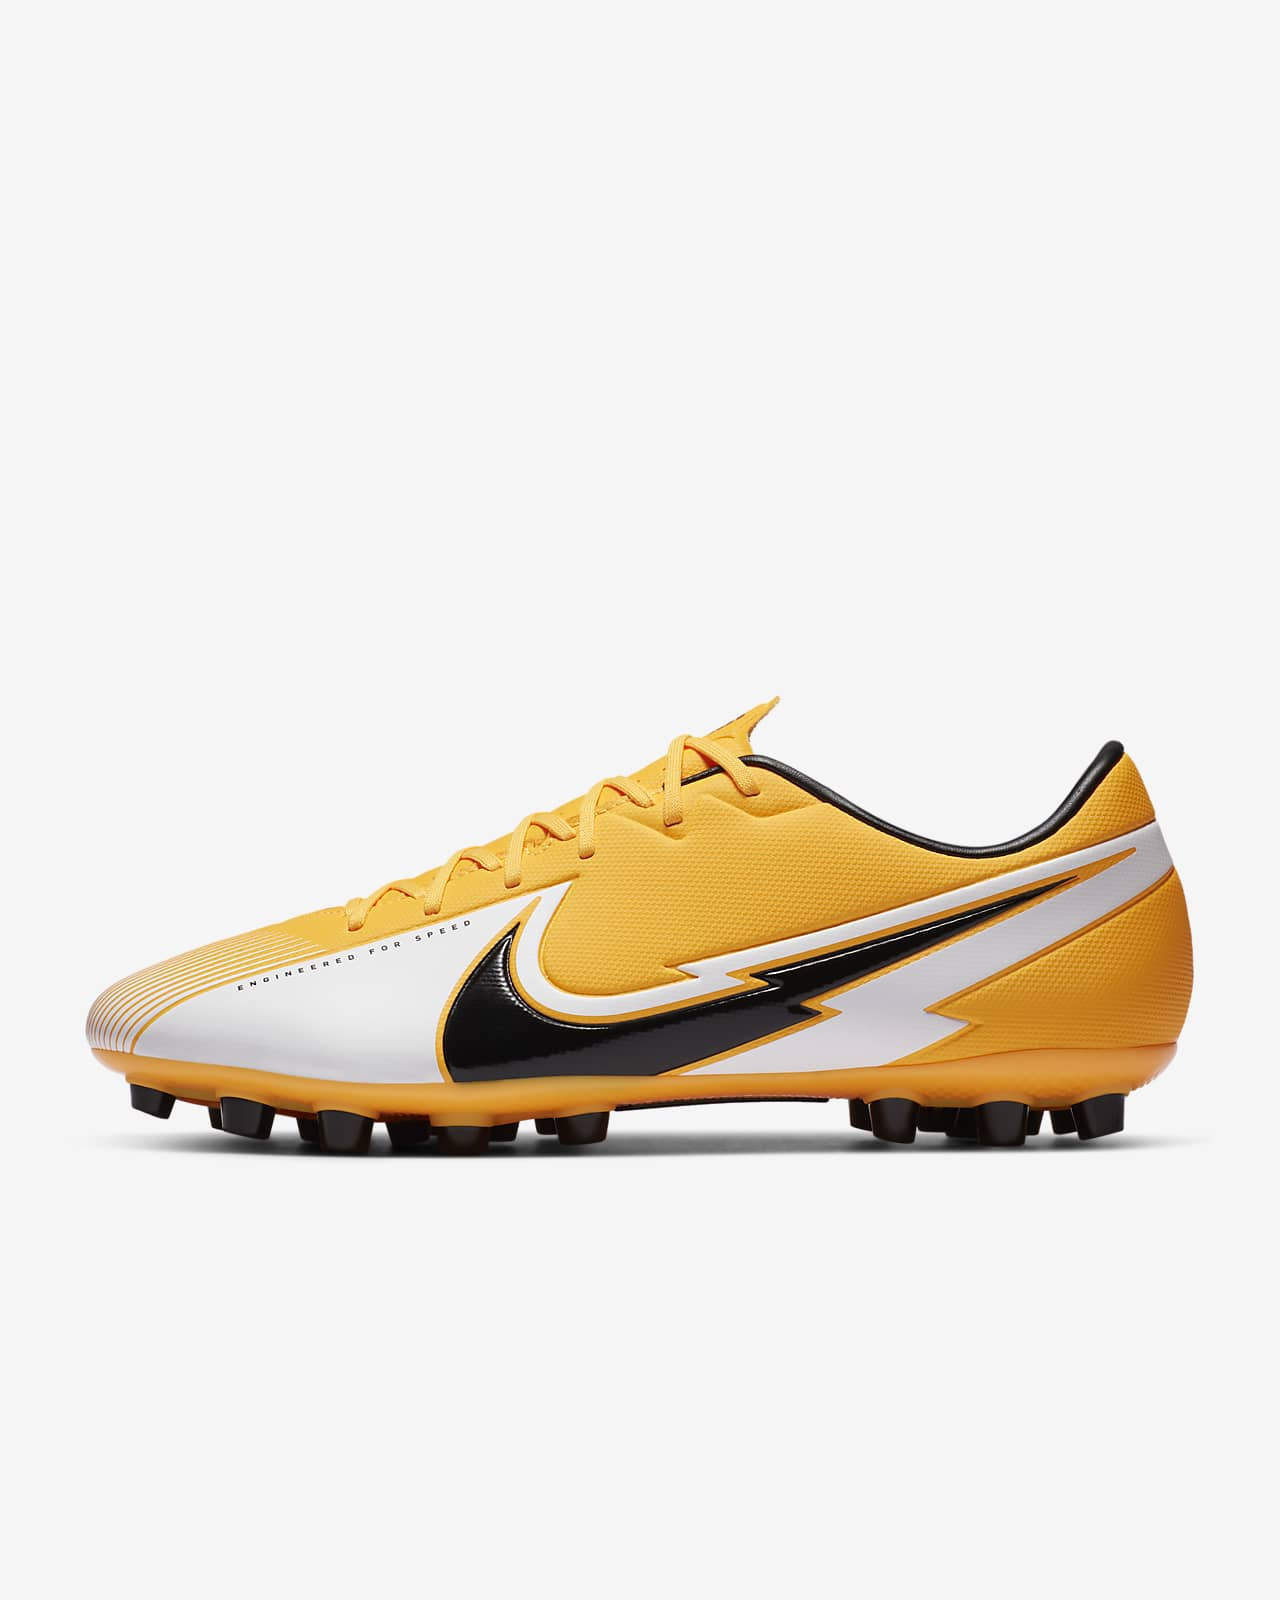 Nike Mercurial Vapor 13 Academy AG Artificial-Grass Football Boot